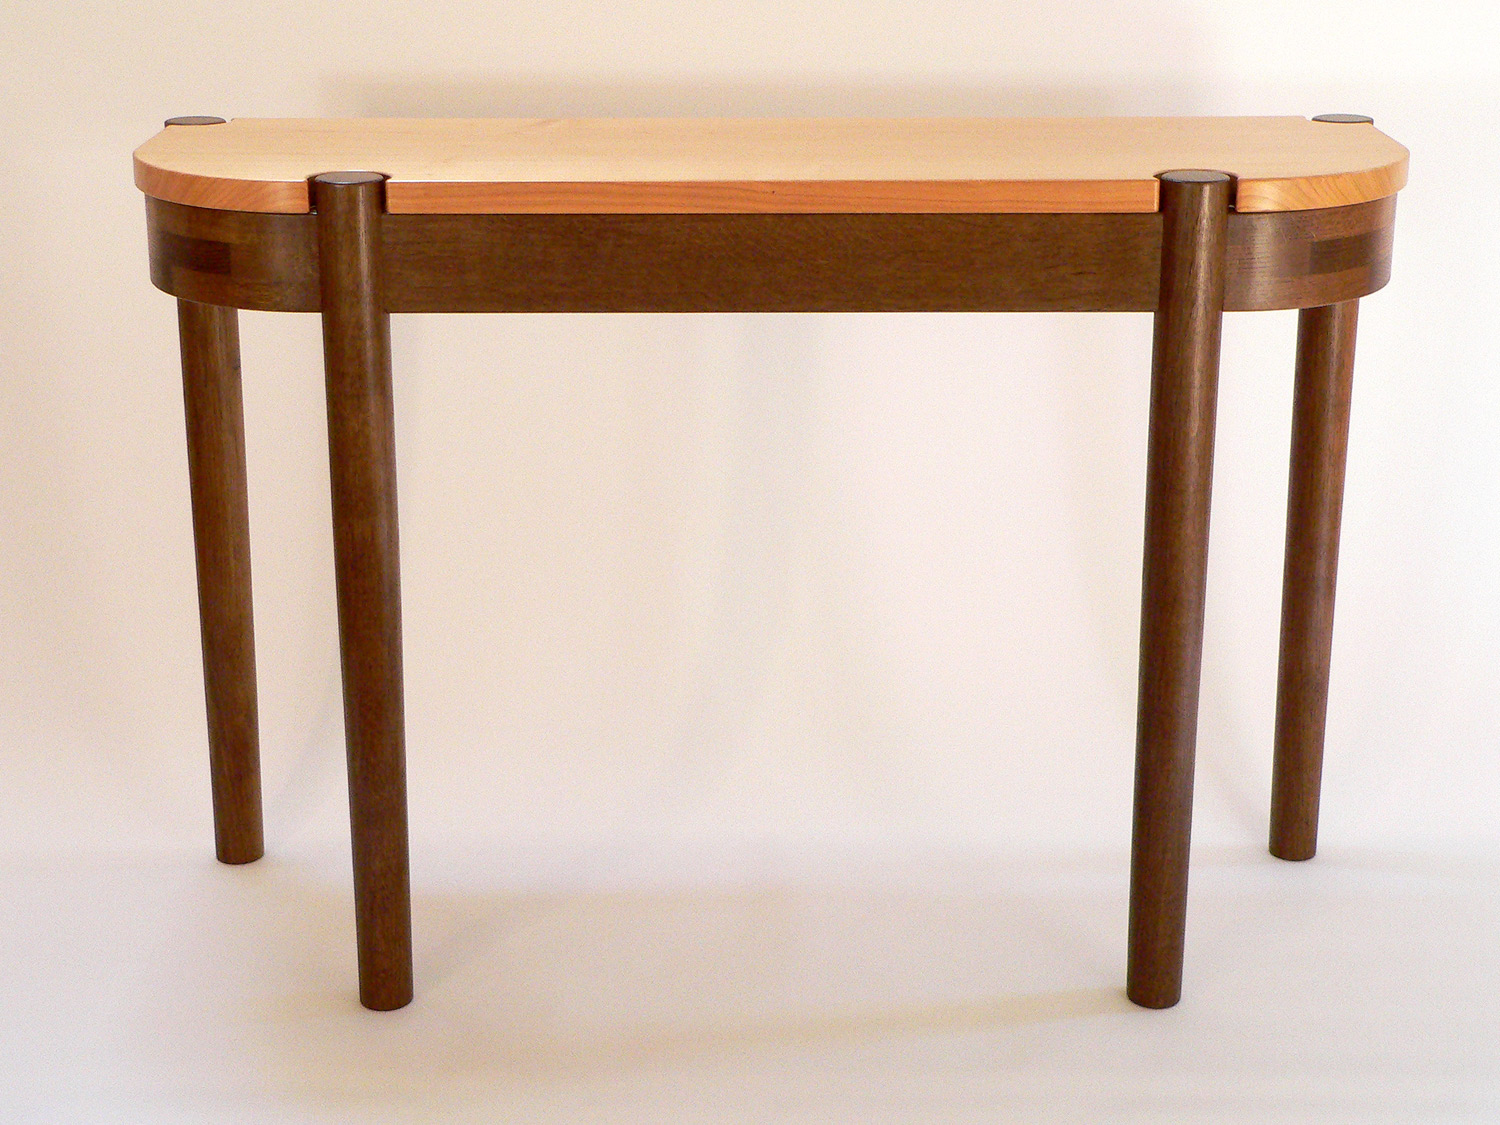 Cheltenham Concentric Side / Console Table